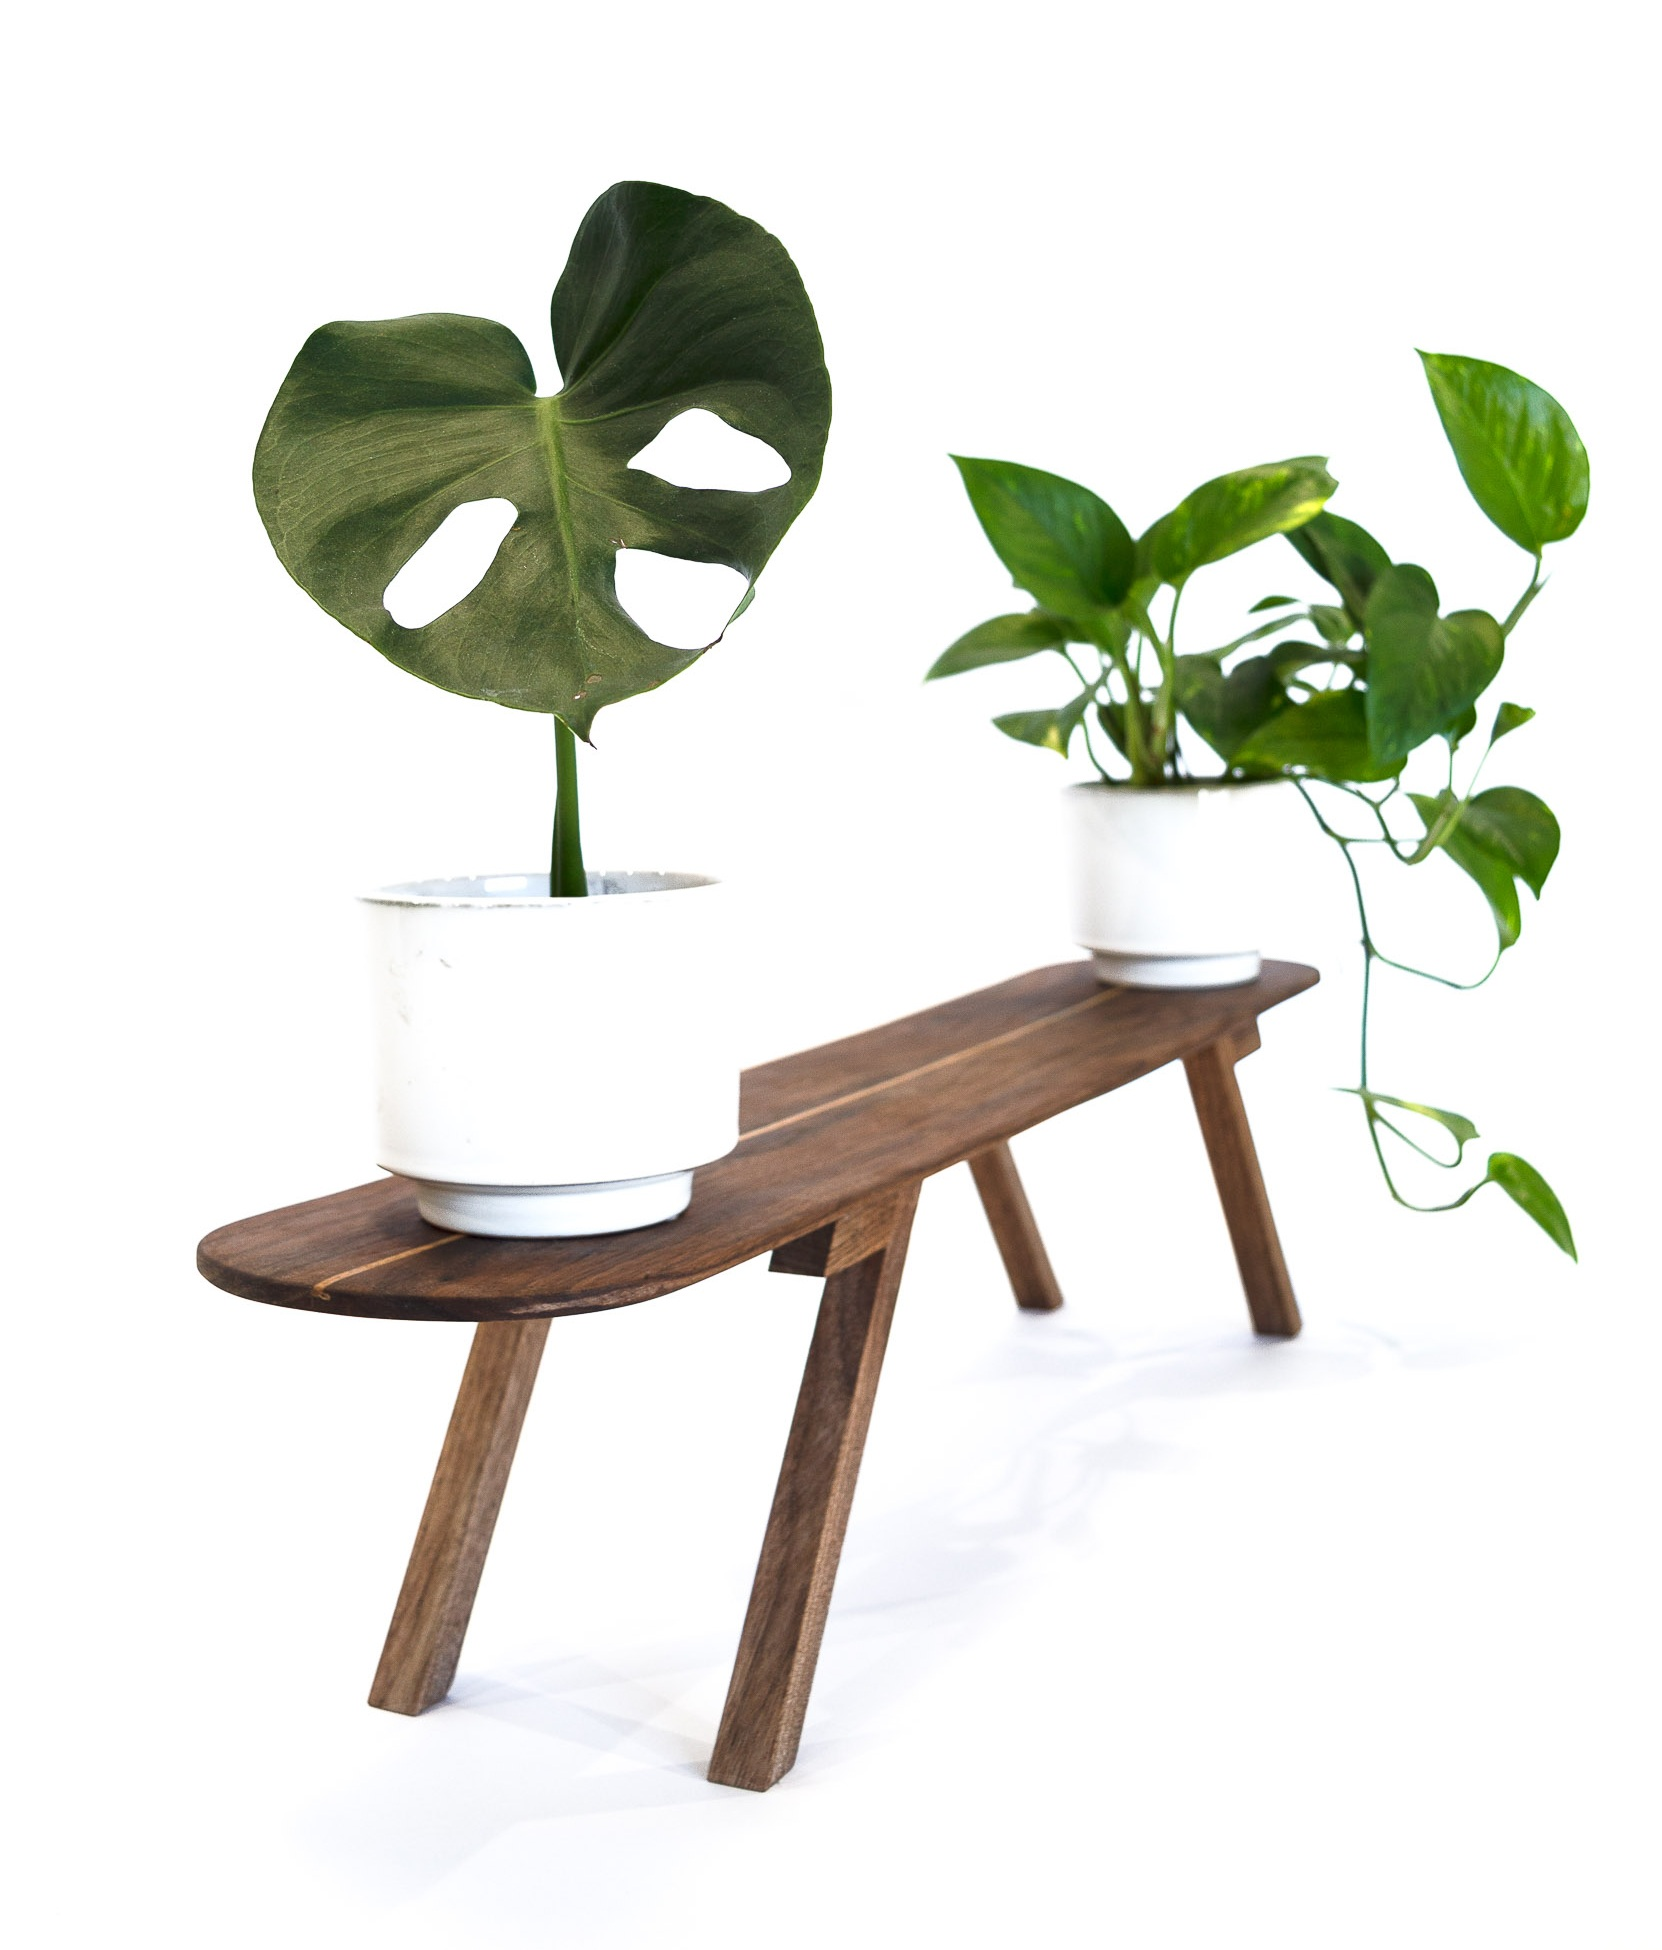 PLANT+STANDS-15.jpg